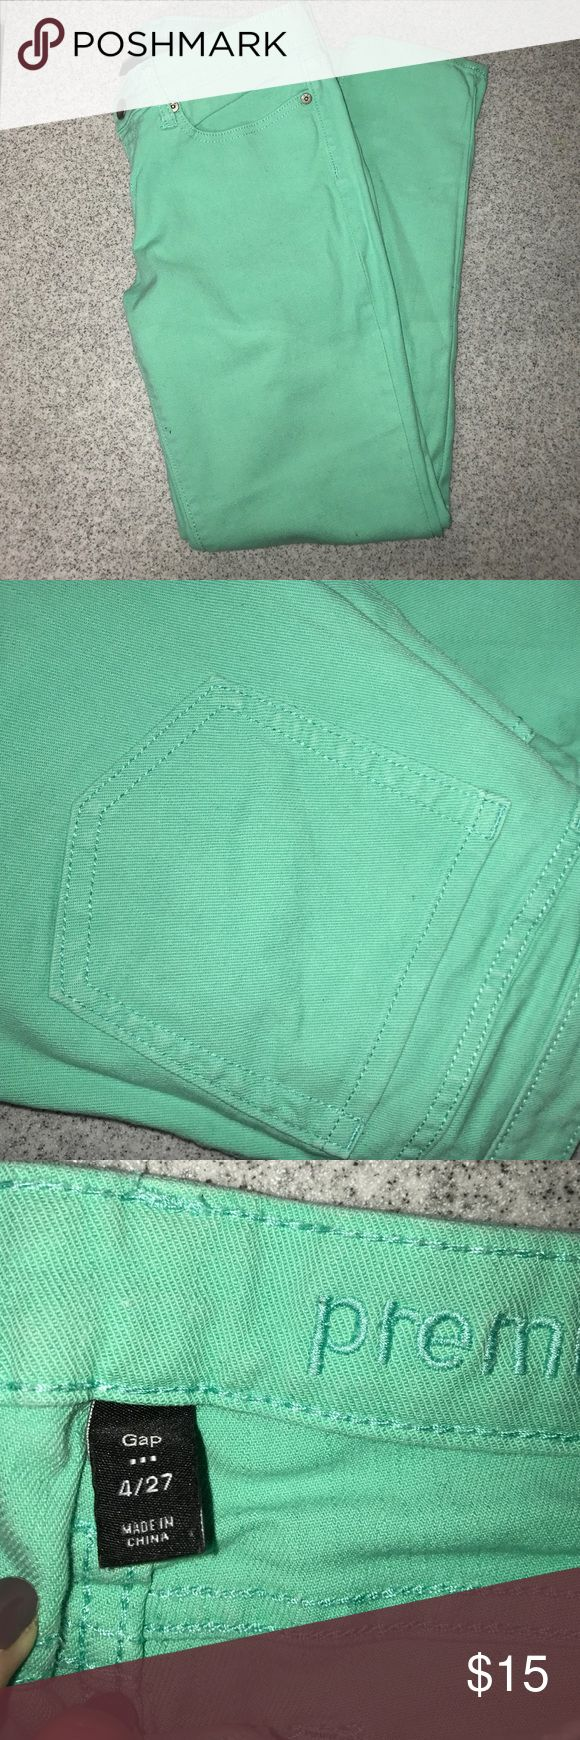 Mint Green Jeans Bright mint green skinny jeans from gap. Easily cuffed at the bottom into capris super cute in the summer time! GAP Jeans Skinny